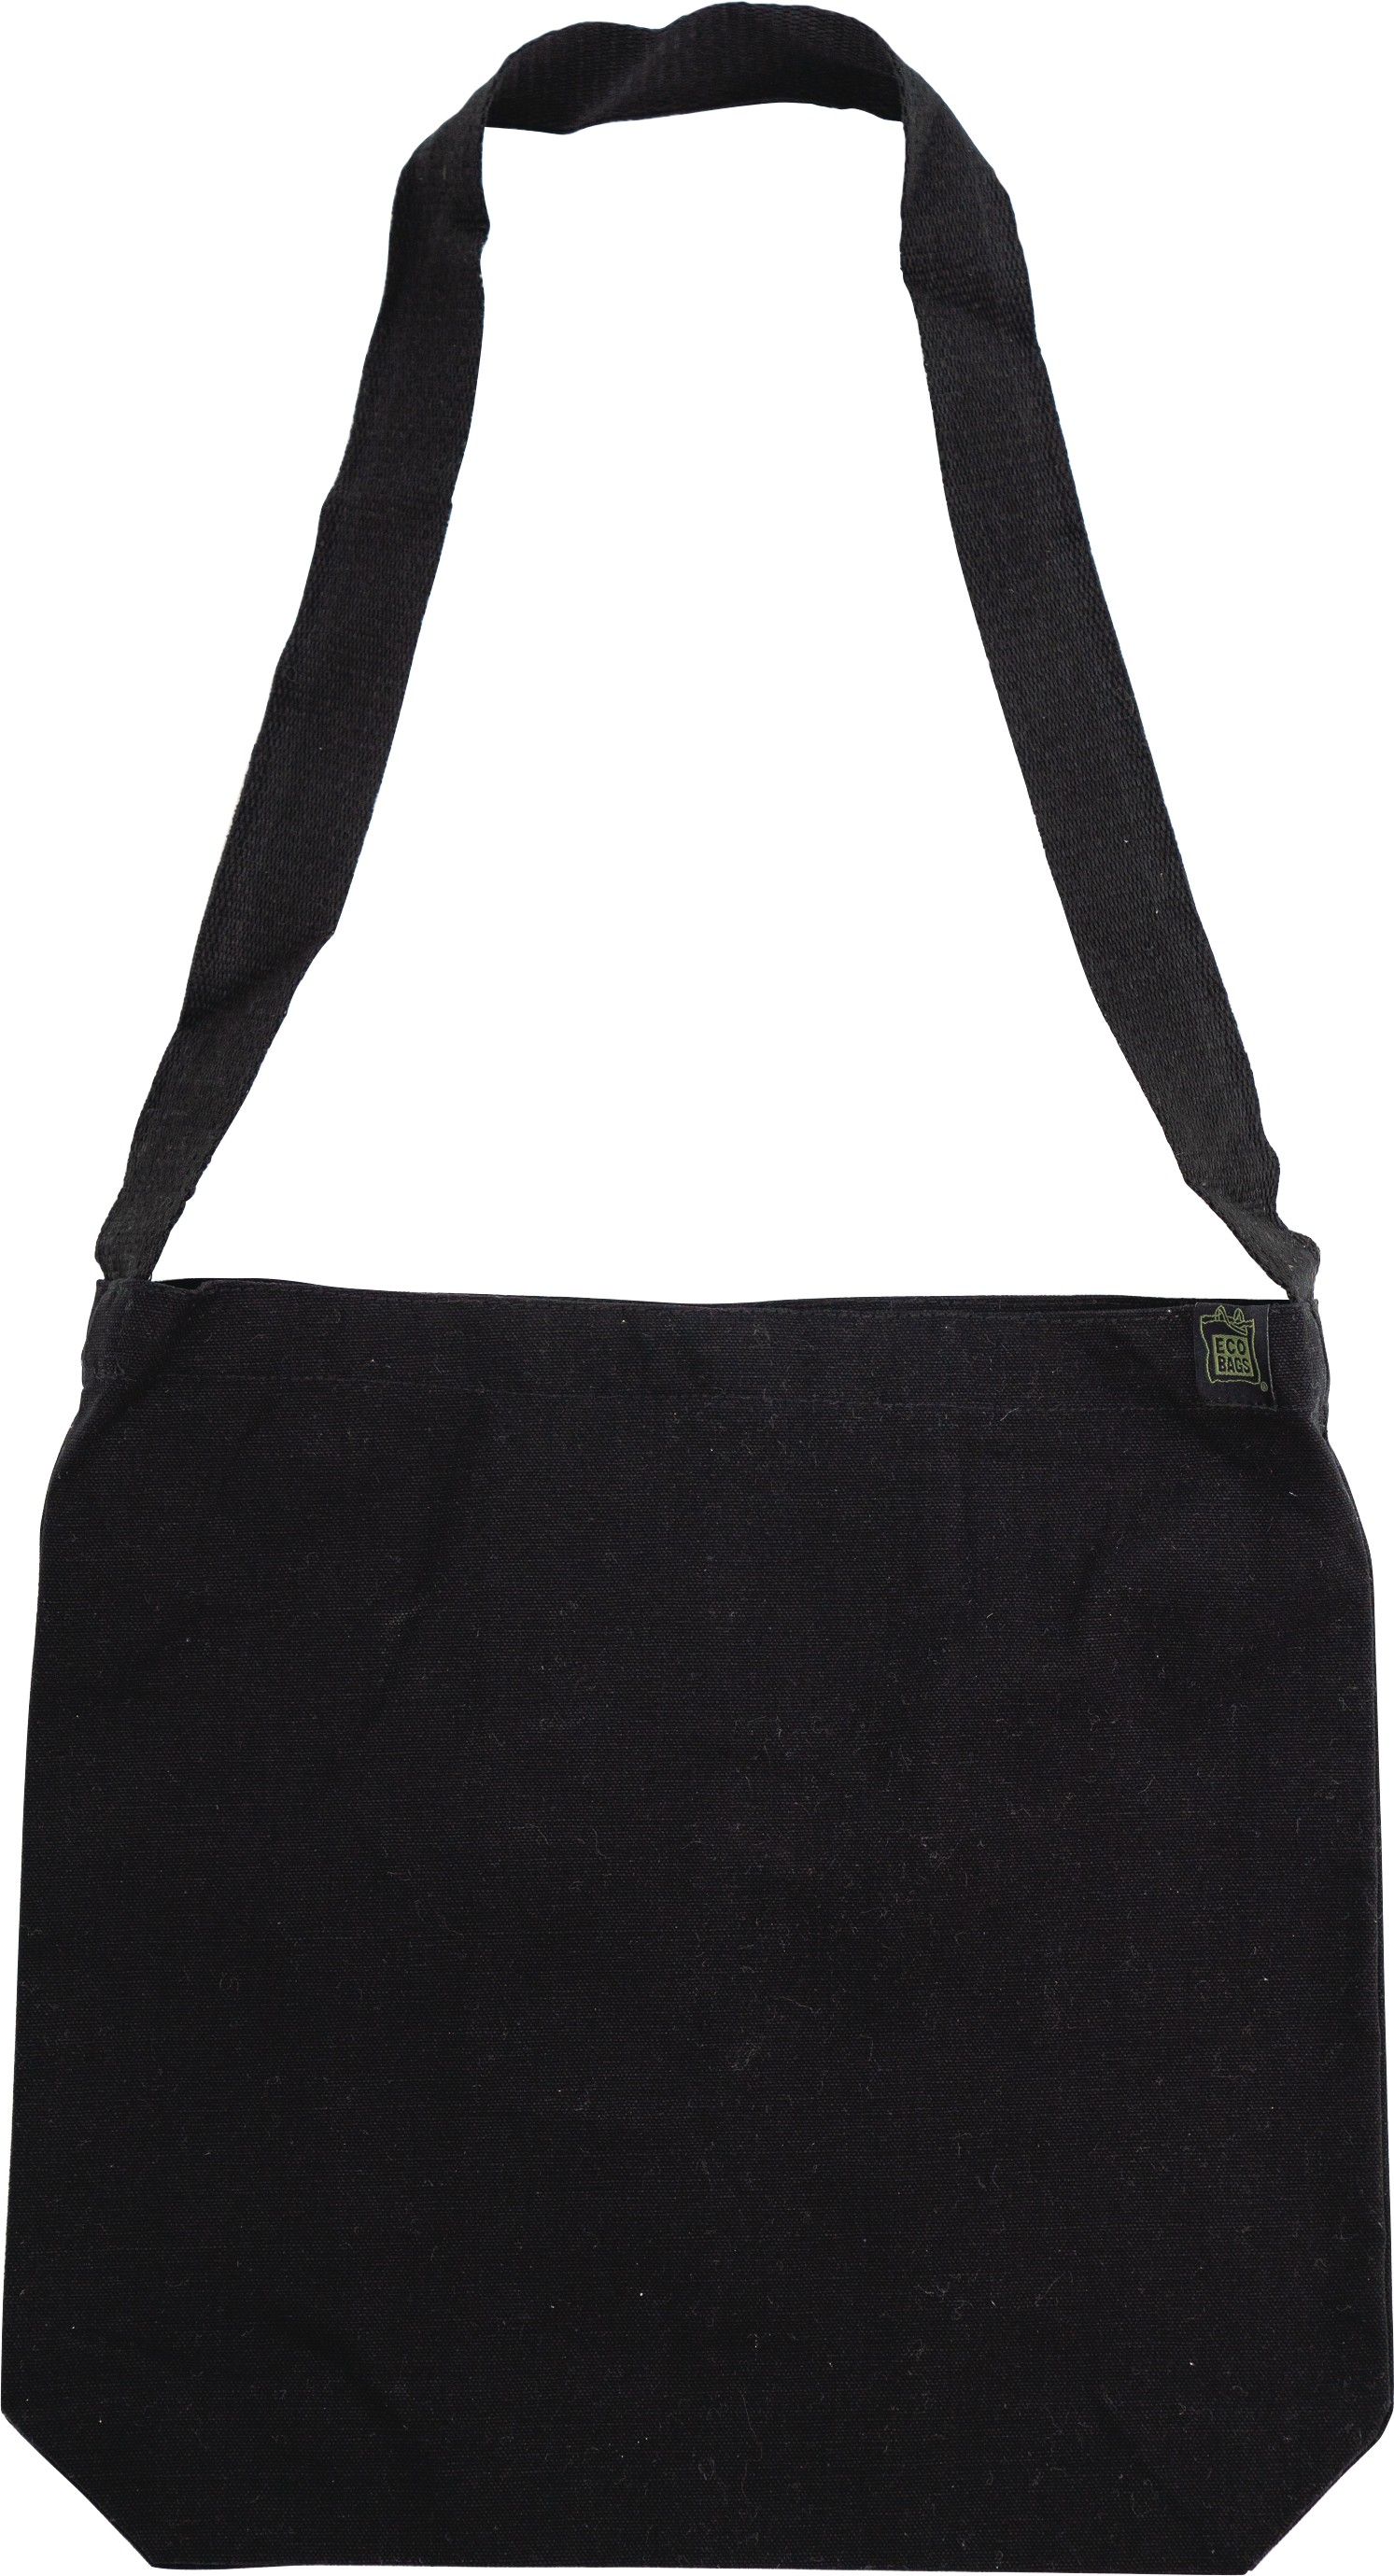 ECOBAGS® Recycled Cotton Crossbody Bag in Black